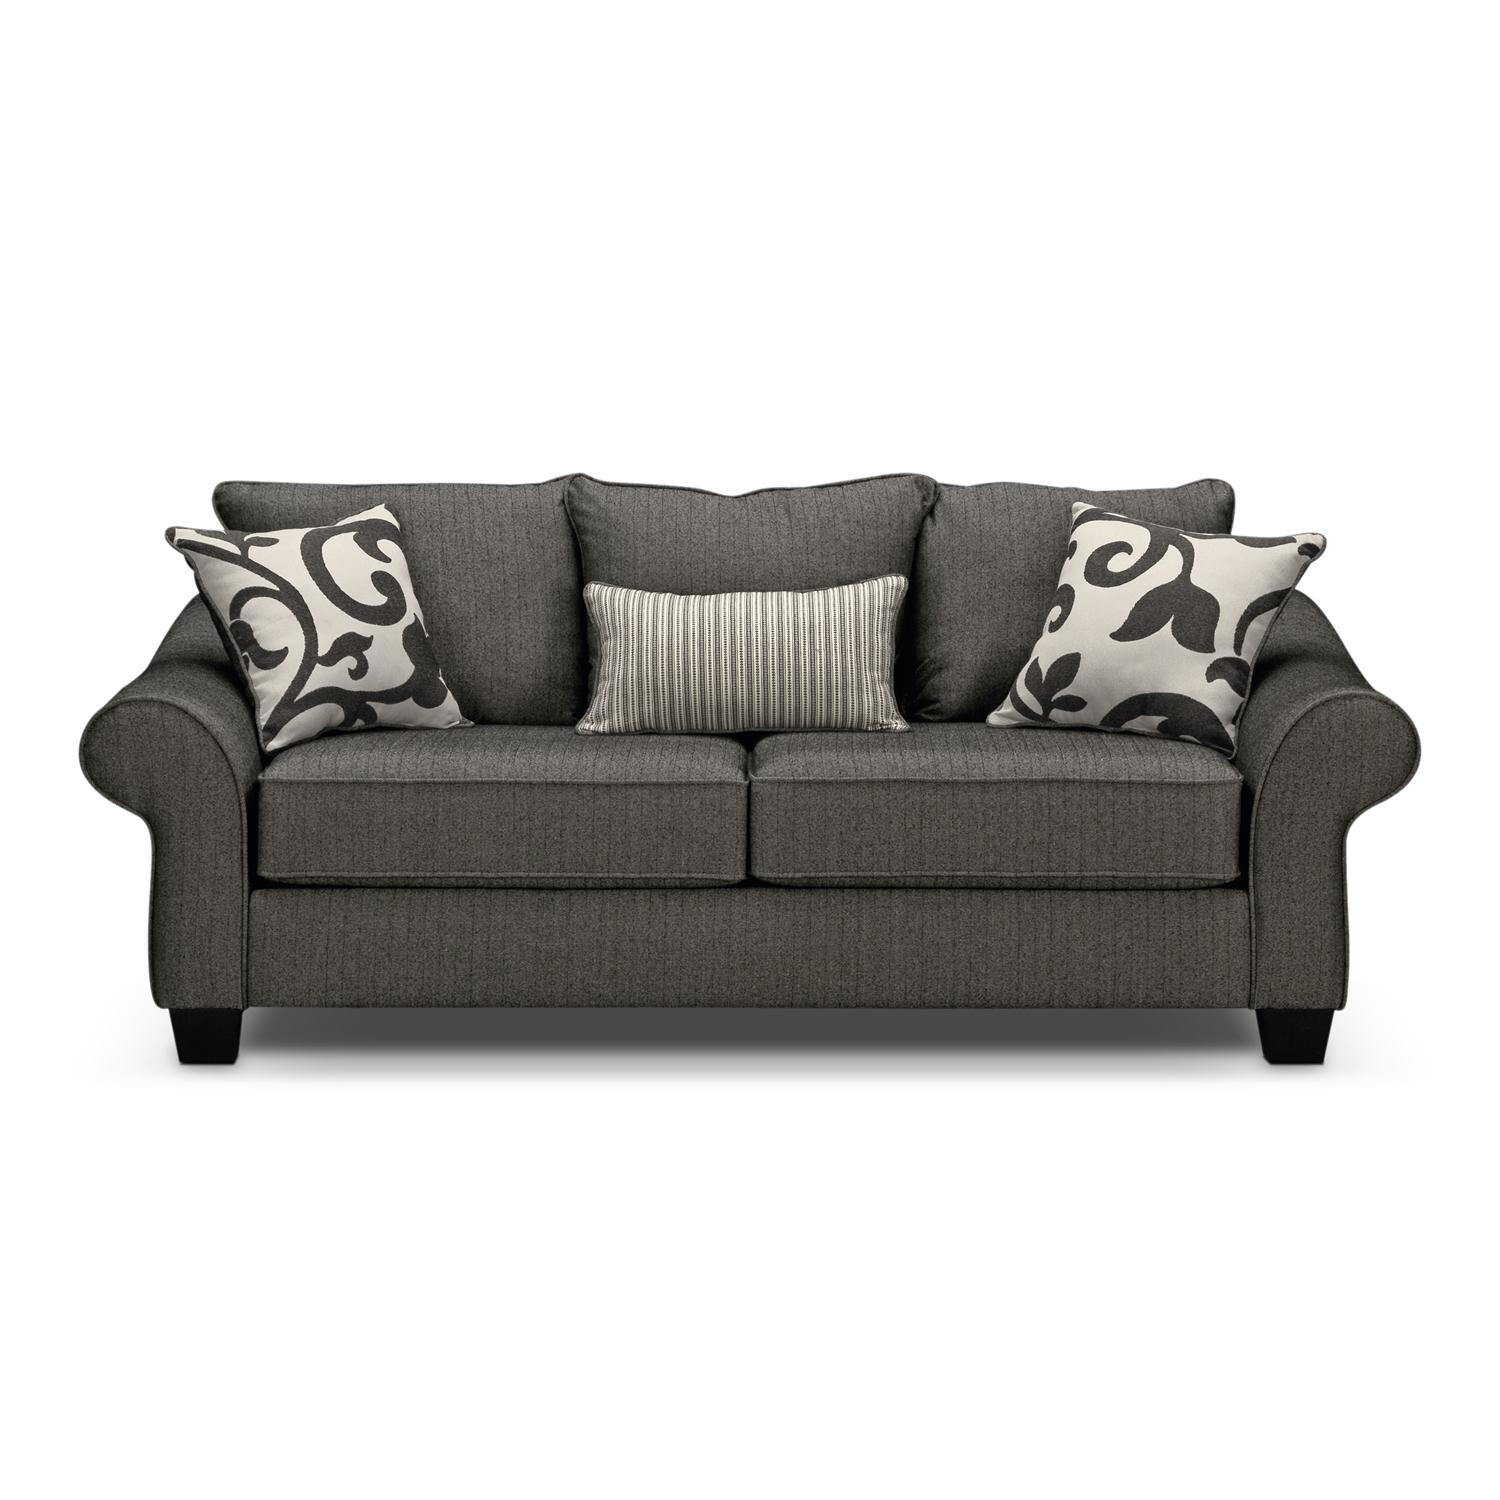 Sofas Center : Value City Furniture Sectional Sleepers Sofa Sale Regarding Value City Sofas (Image 18 of 20)